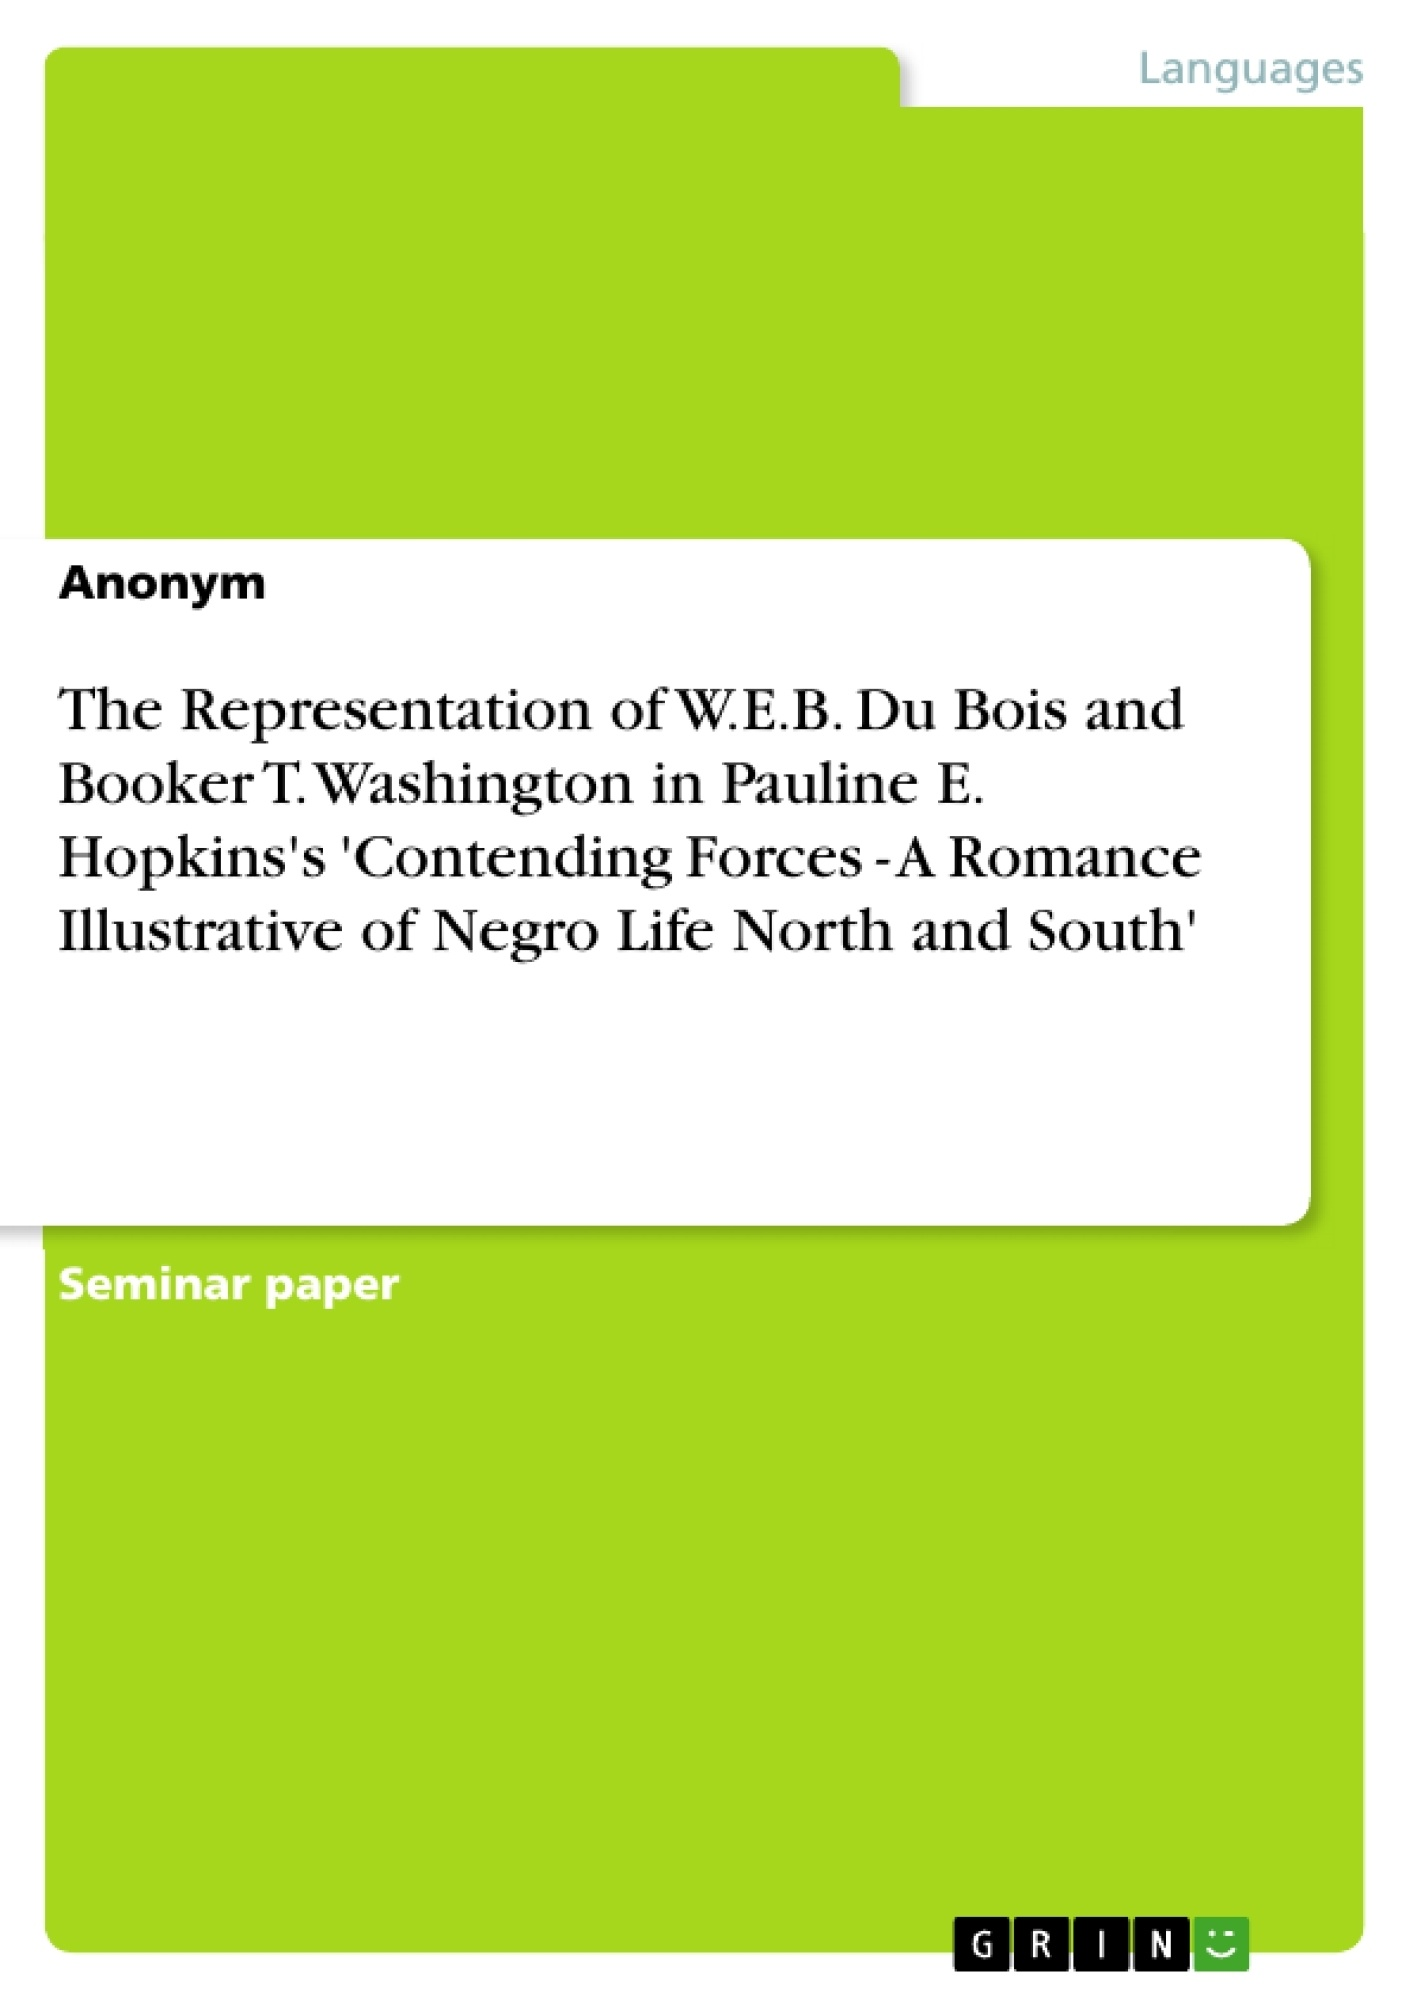 web dubois essays com the souls of black folk w e b du images  the representation of w e b du bois and booker t washington in the representation of w e b du